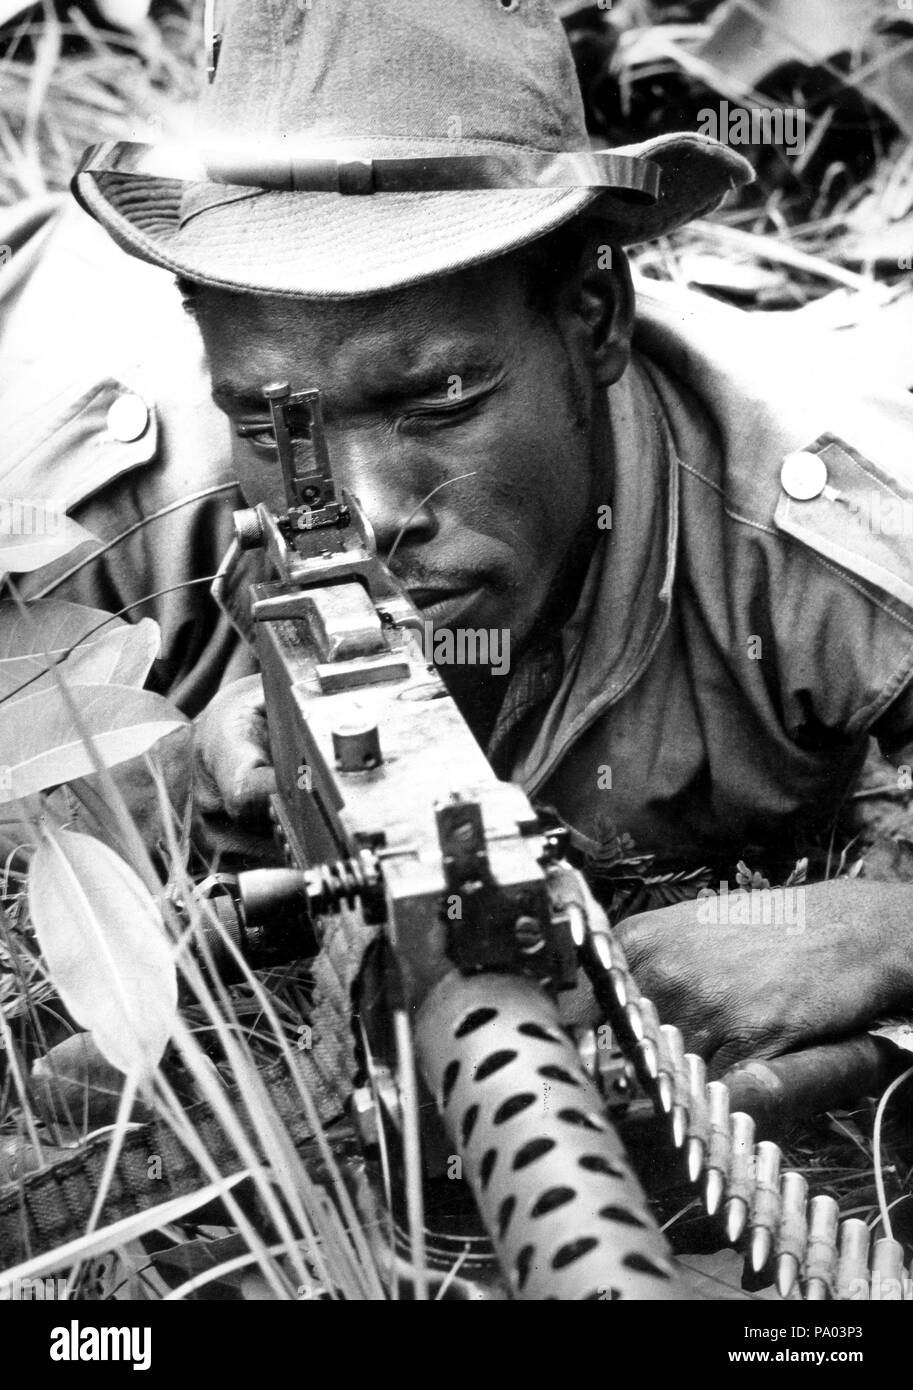 soldier, angola - Stock Image